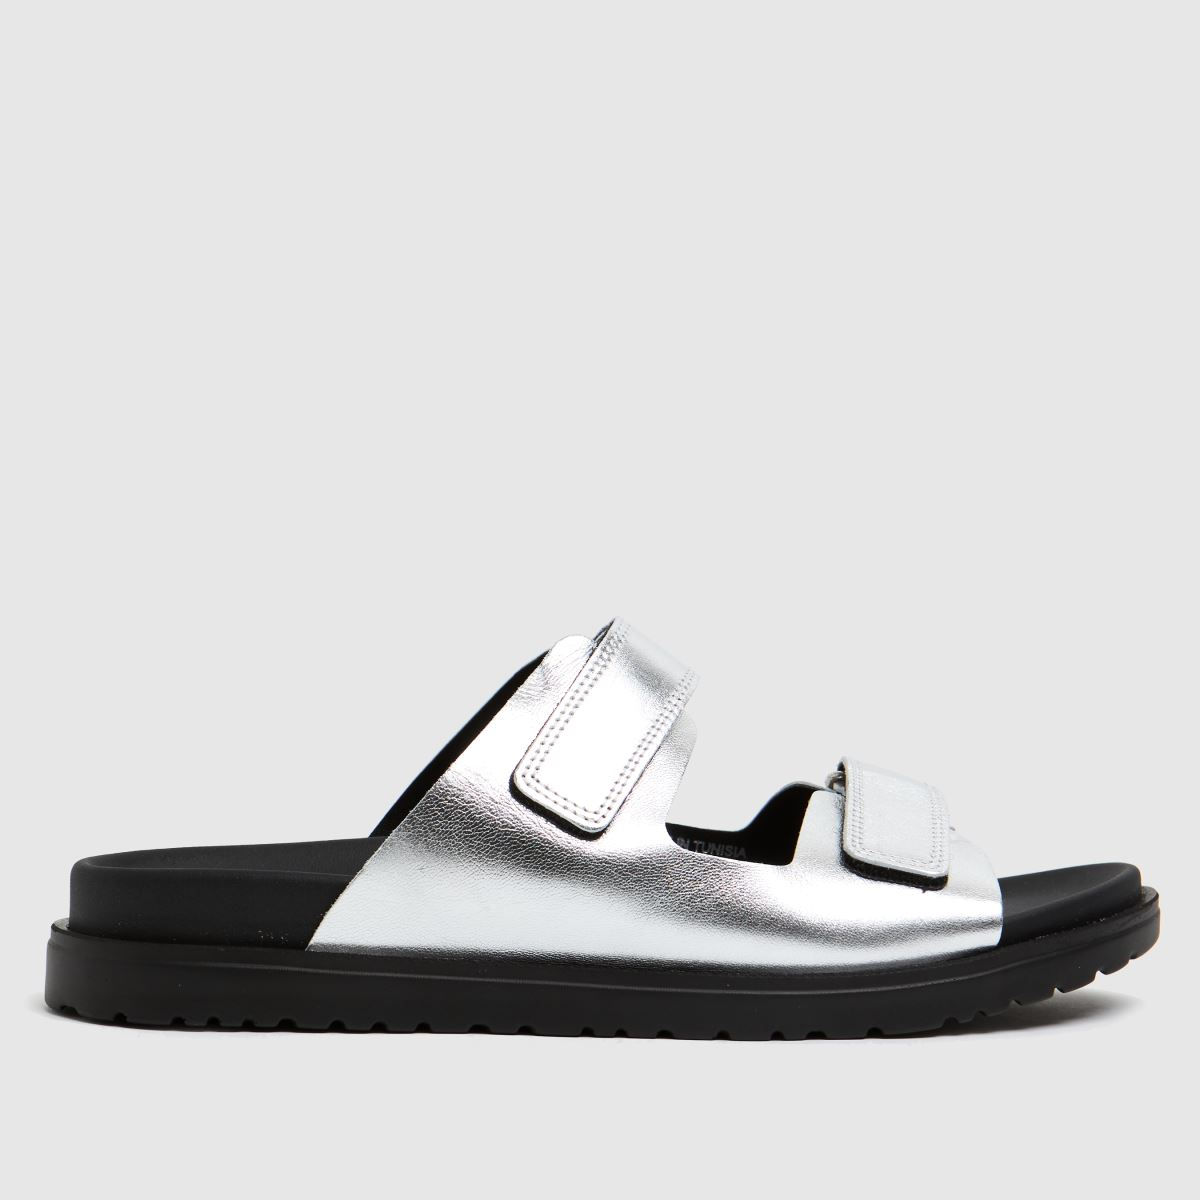 The Edit By Schuh Silver Pearl Leather Sandals